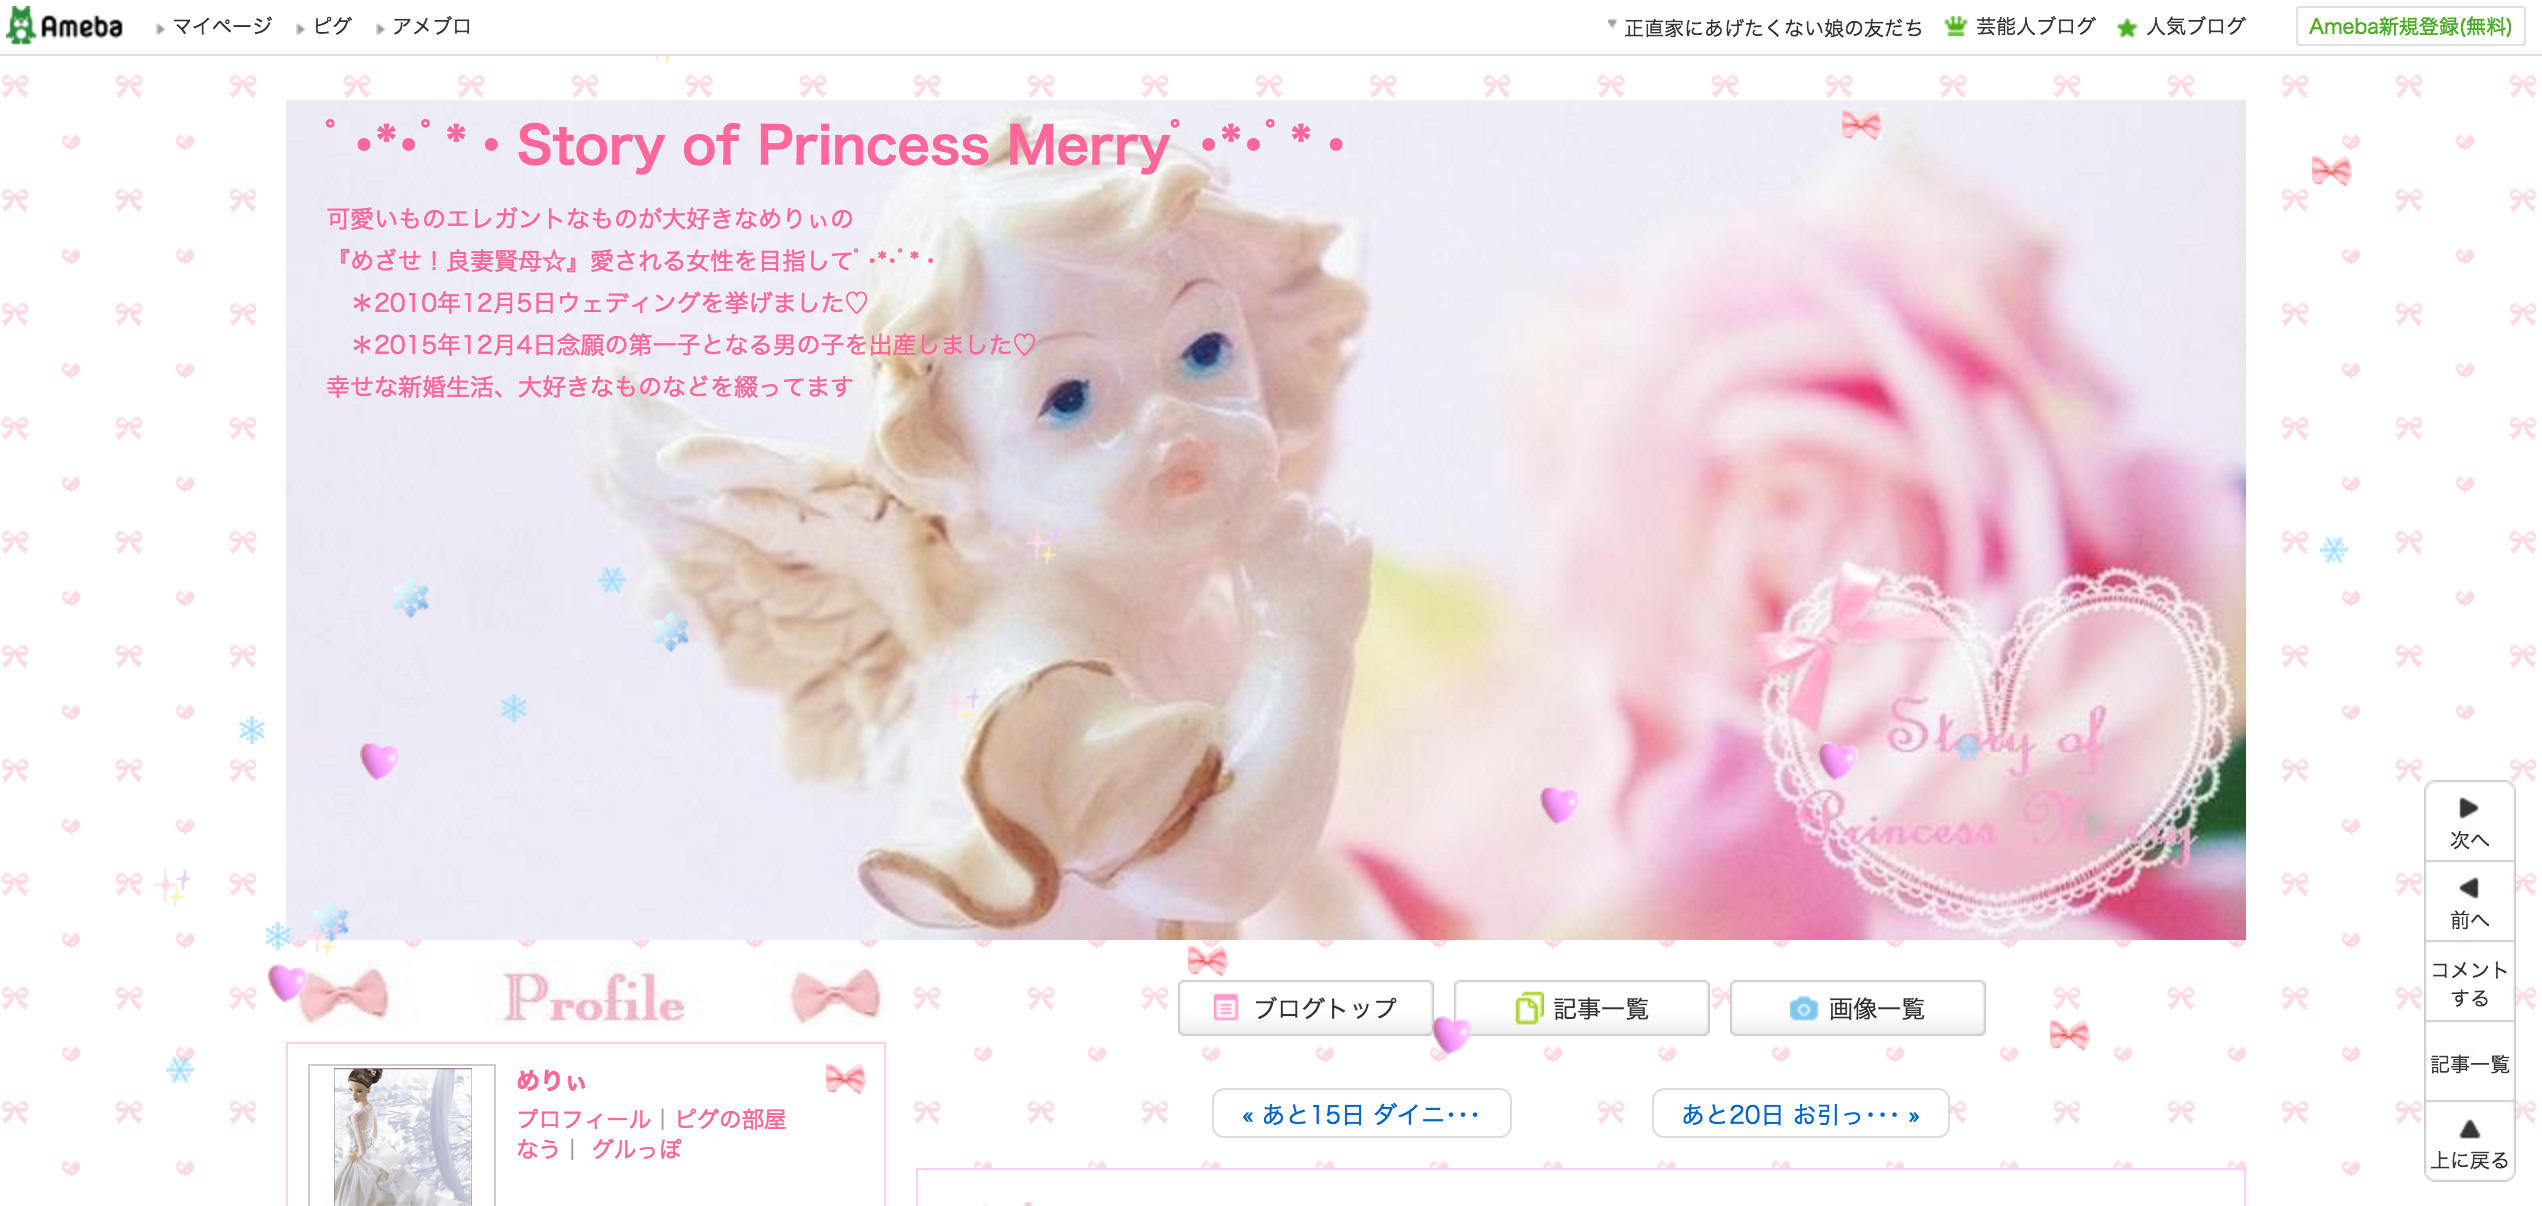 ・*・゚*・Story of Princess Merry゚・*・゚*・